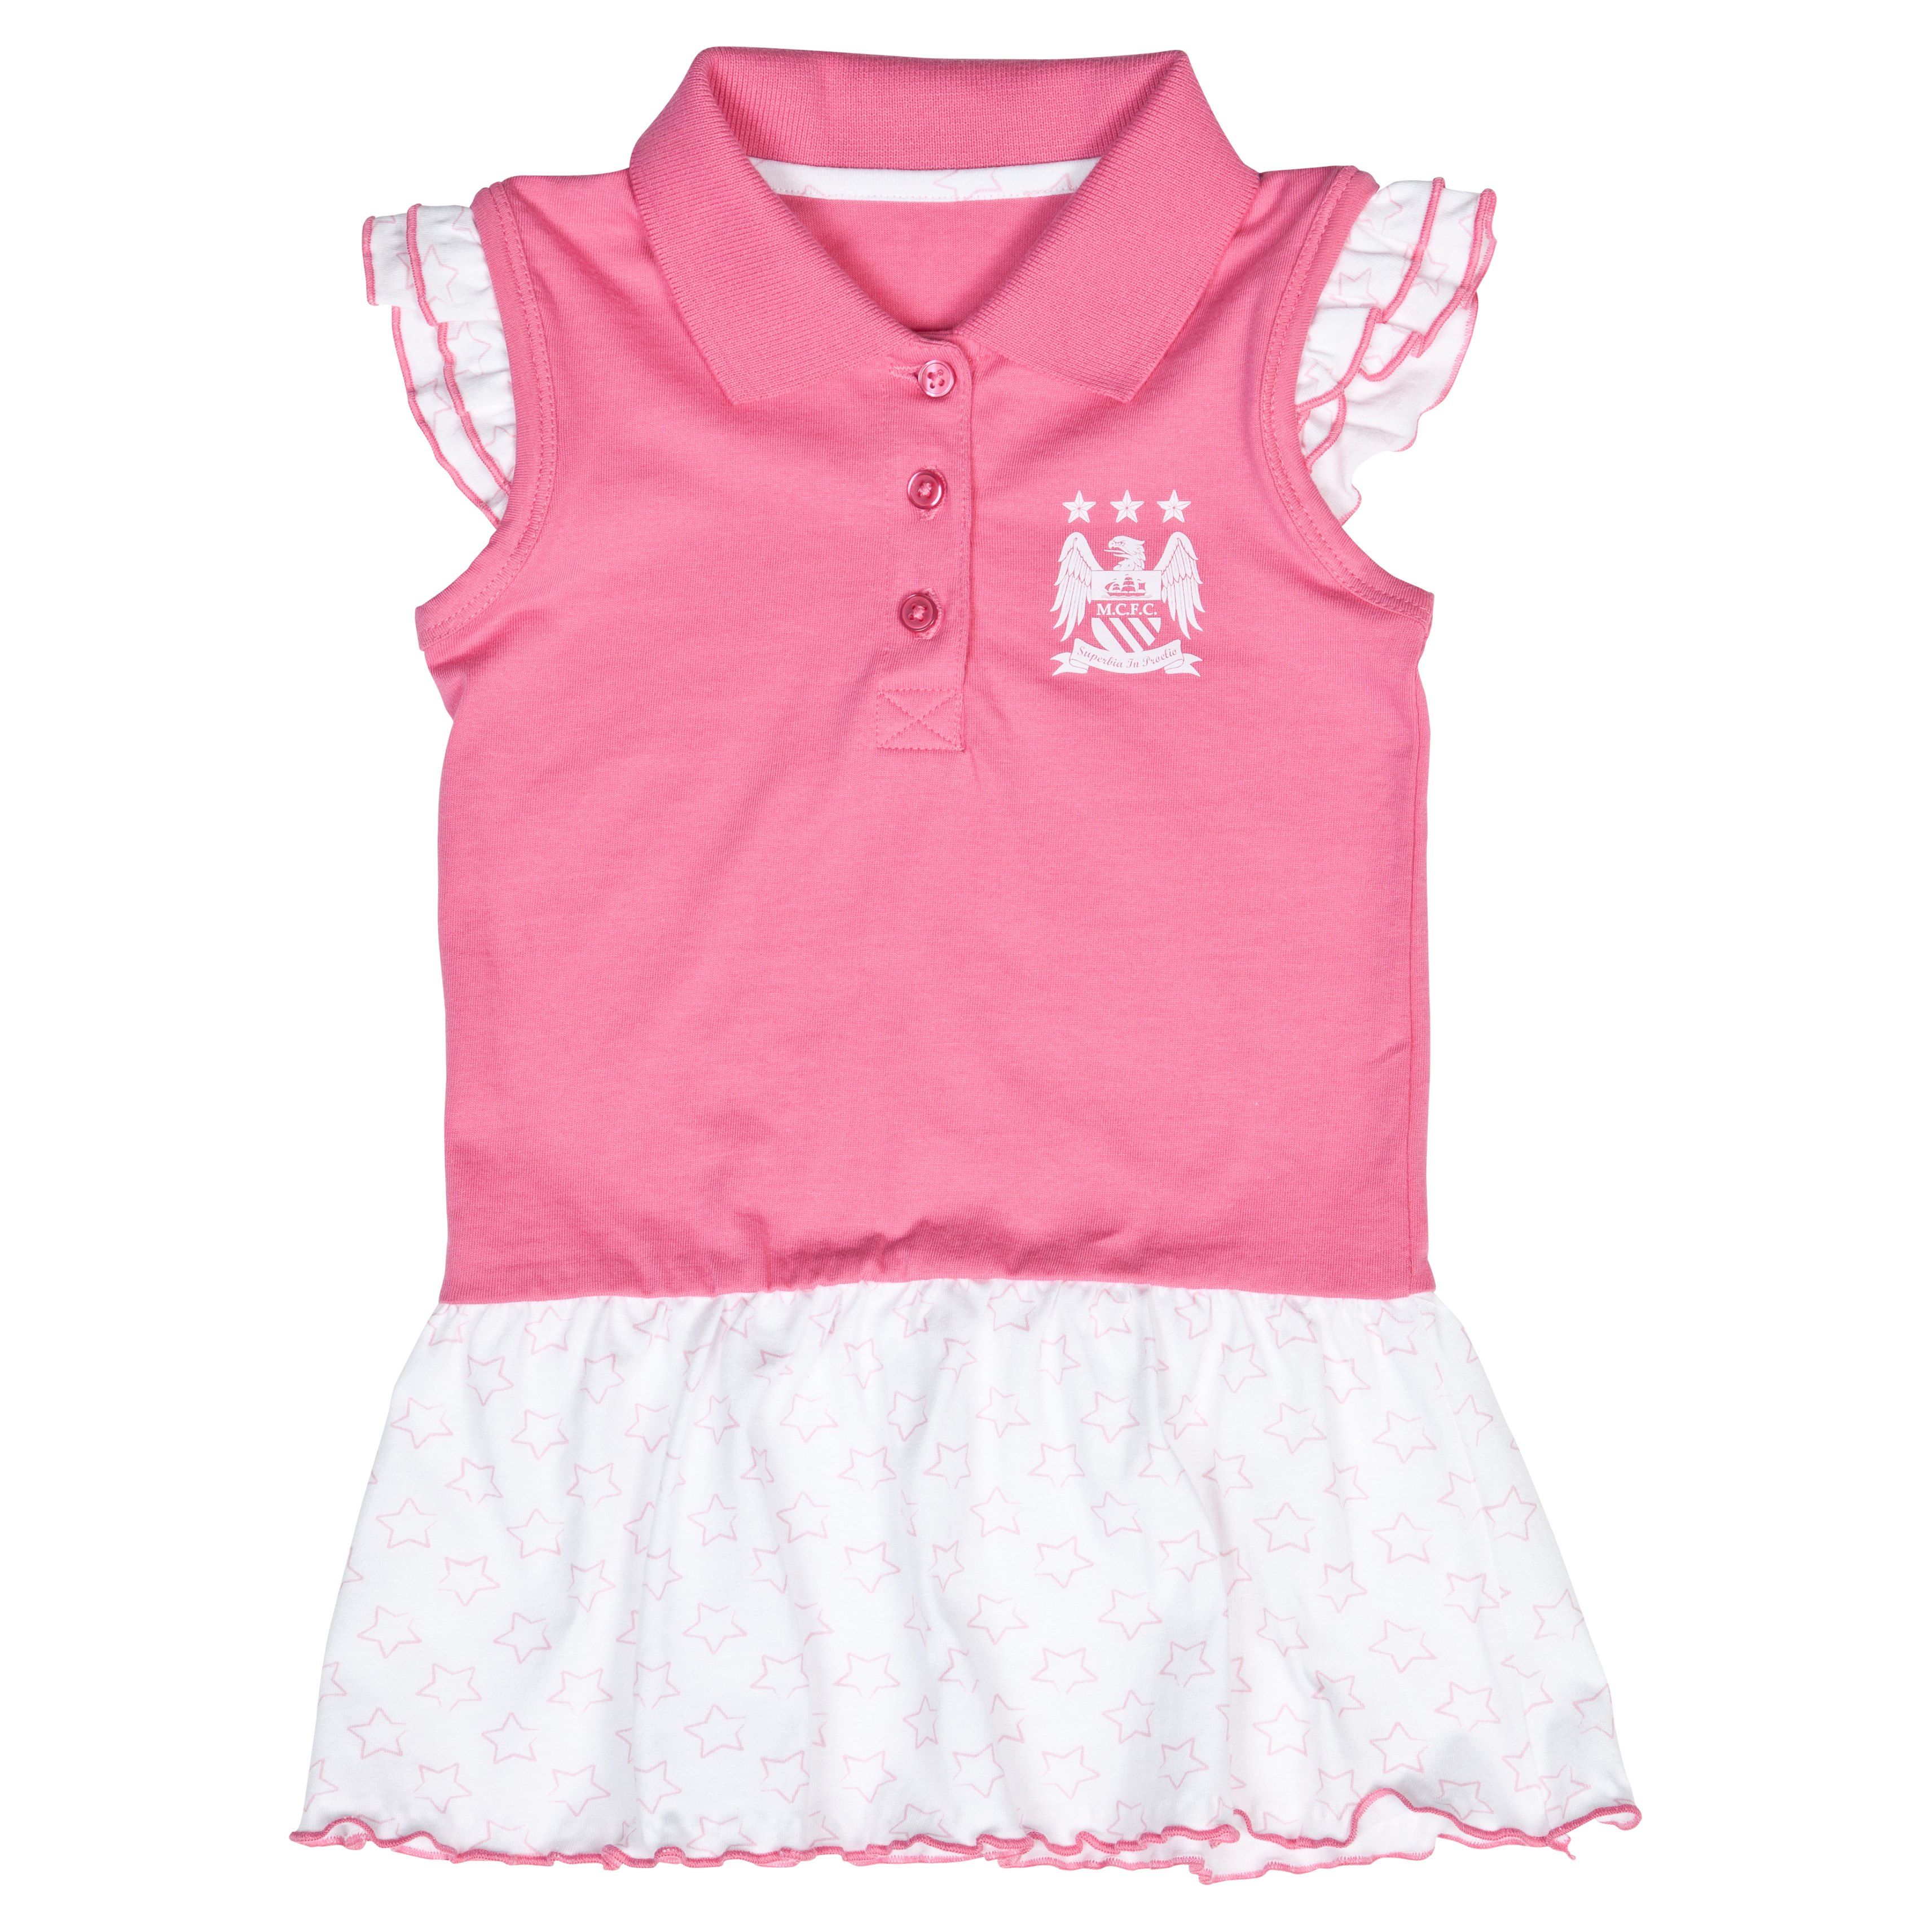 Manchester City Stars Tennis Dress - Pink/White - Baby